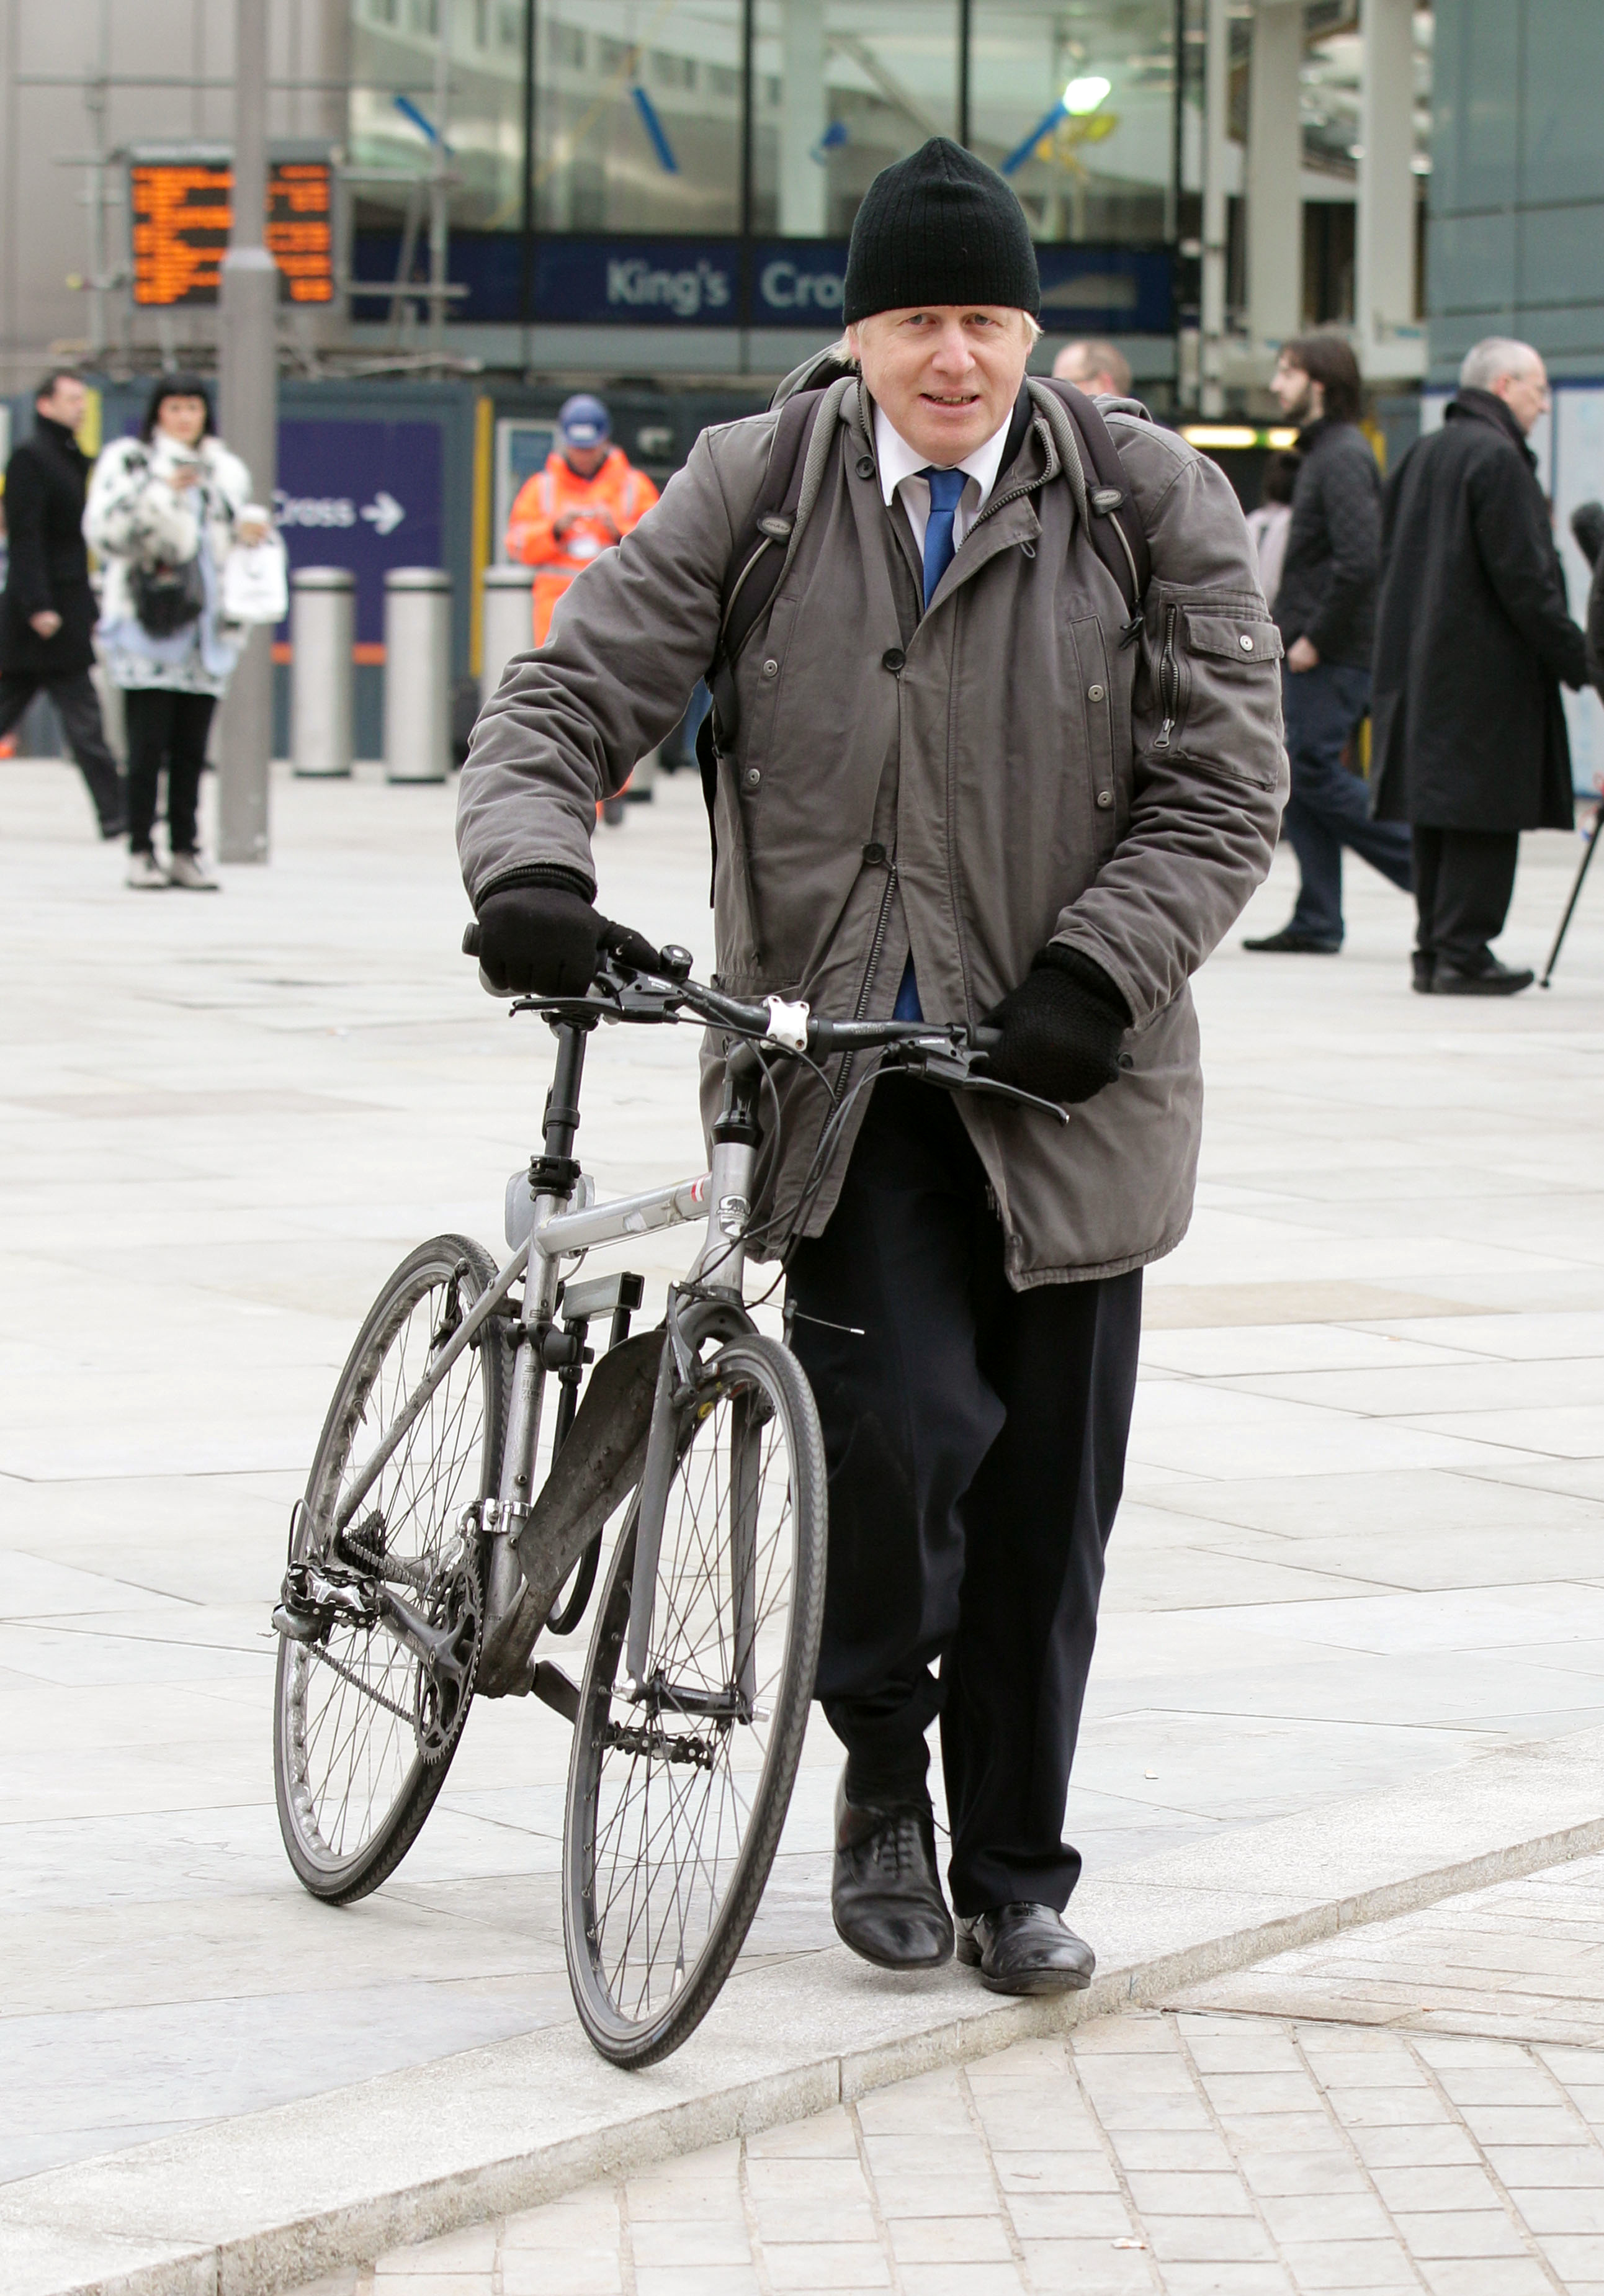 Boris Johnson leaving King's Cross station on his bike after attending the Get Ahead of the Games � Plan Your Travel in 2012 Event, an initiative to explain to commuters and the travelling public across London and the UK how transport networks will operate during Games-time and how they should plan their travel.